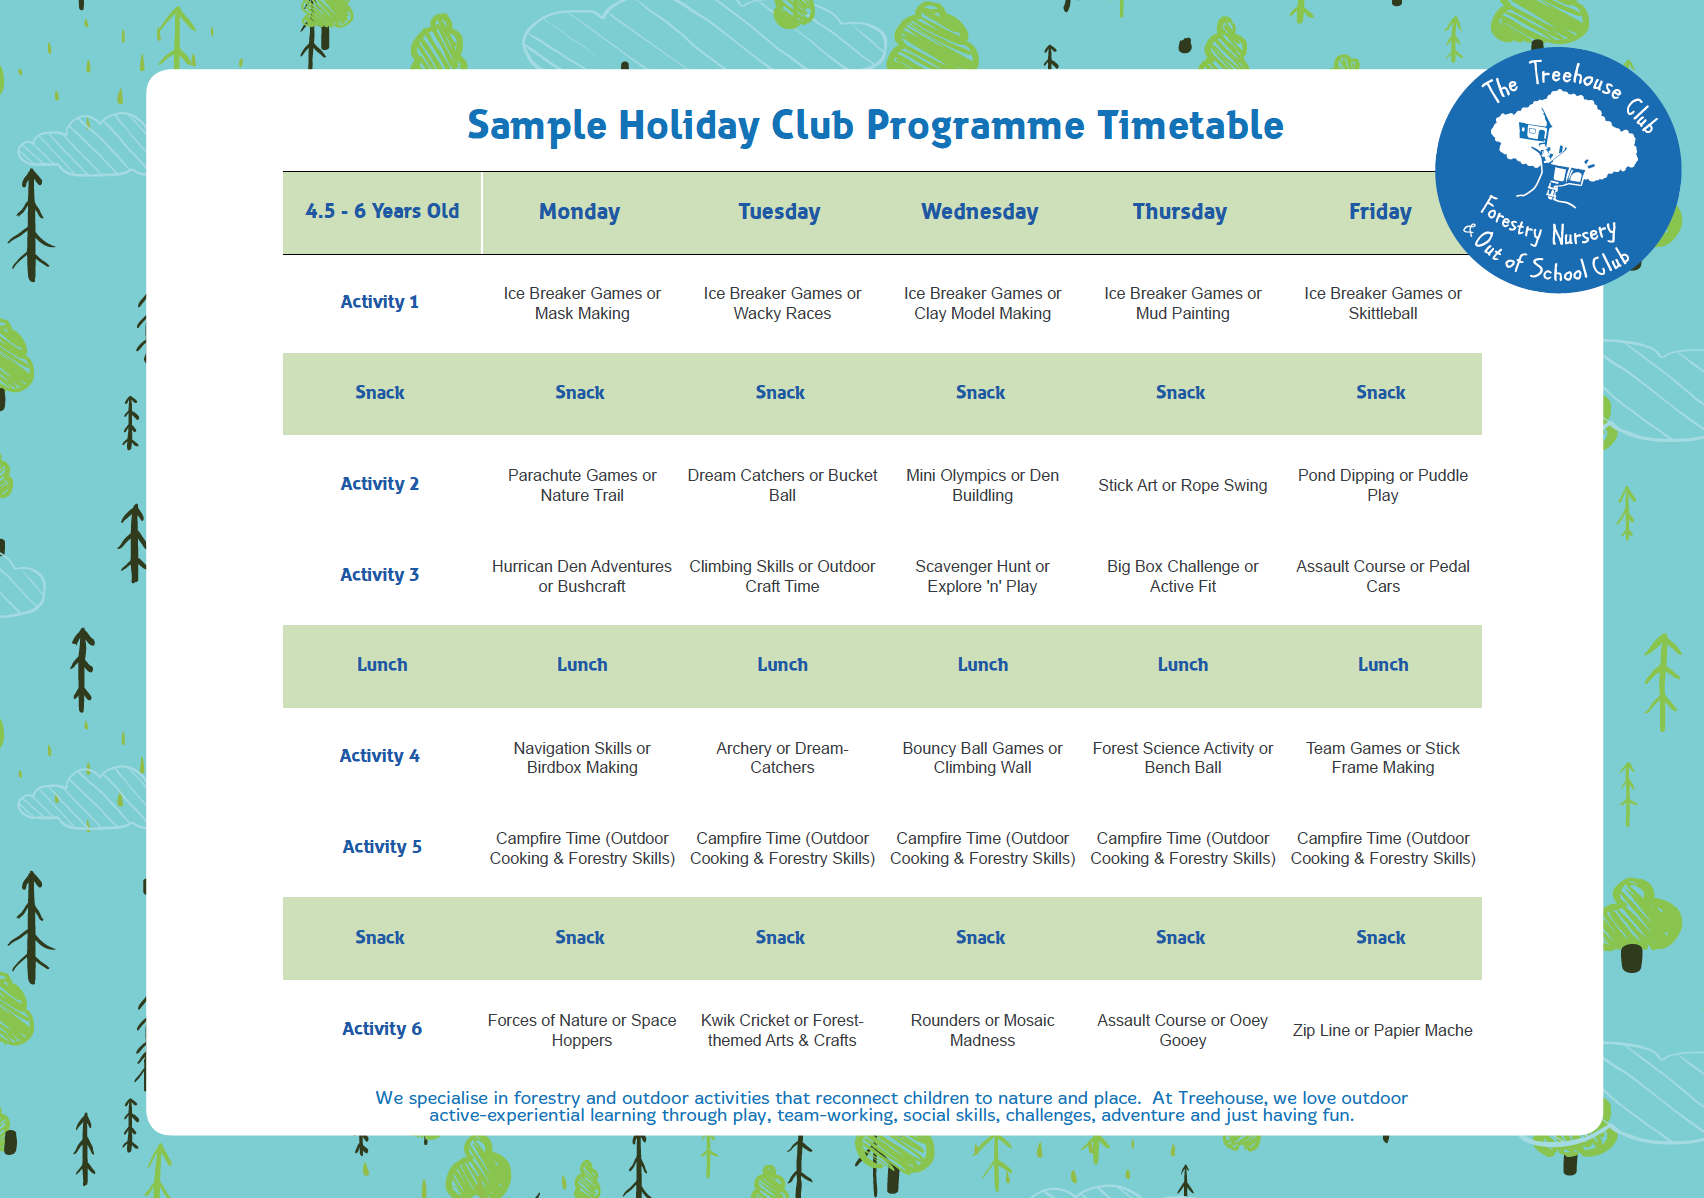 Treehouse Holiday Club Activity Schedule 2019